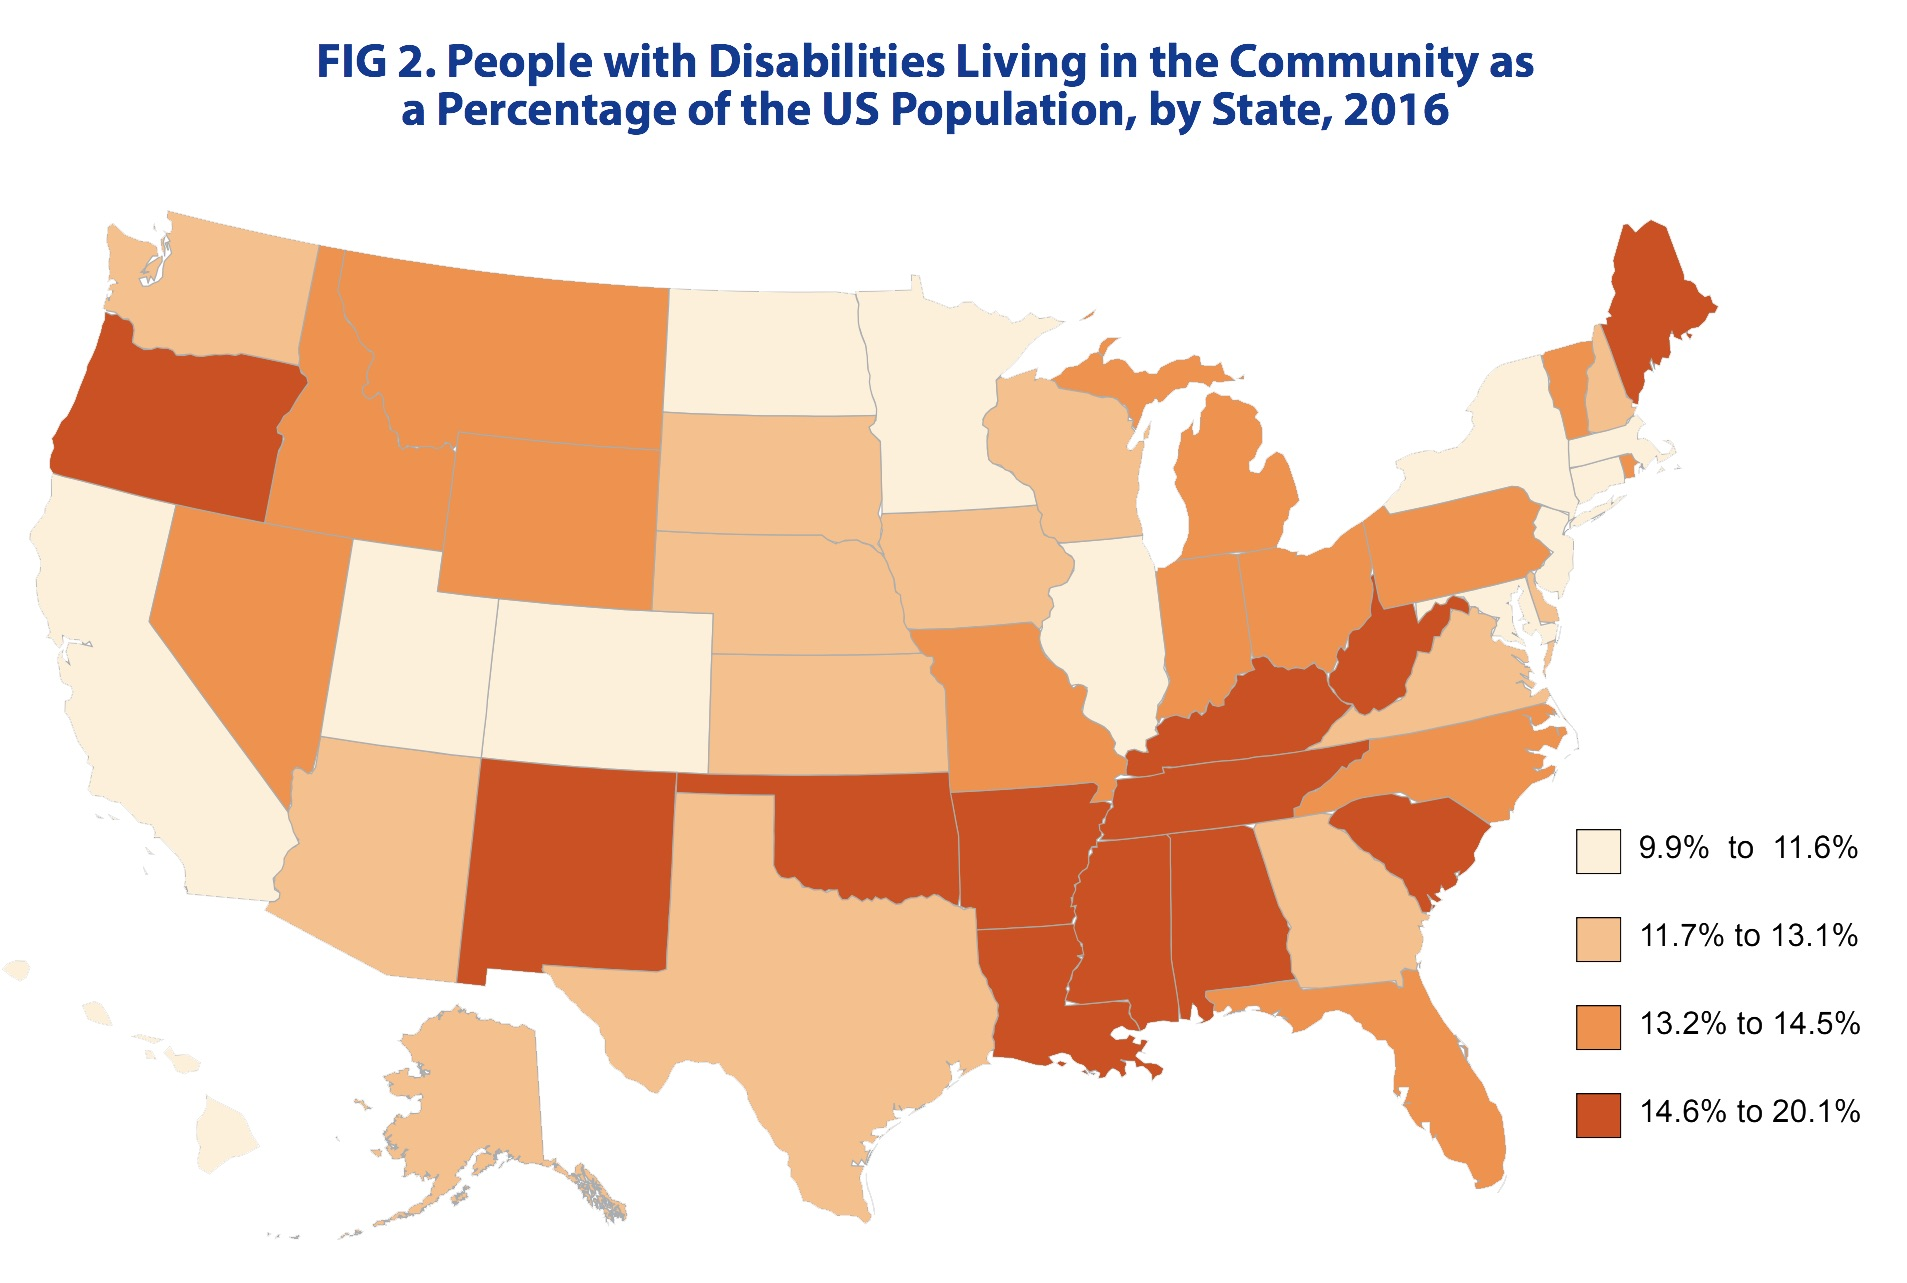 FIG 2. People with Disabilities Living in the Community as a Percentage of the US Population, by State, 2016